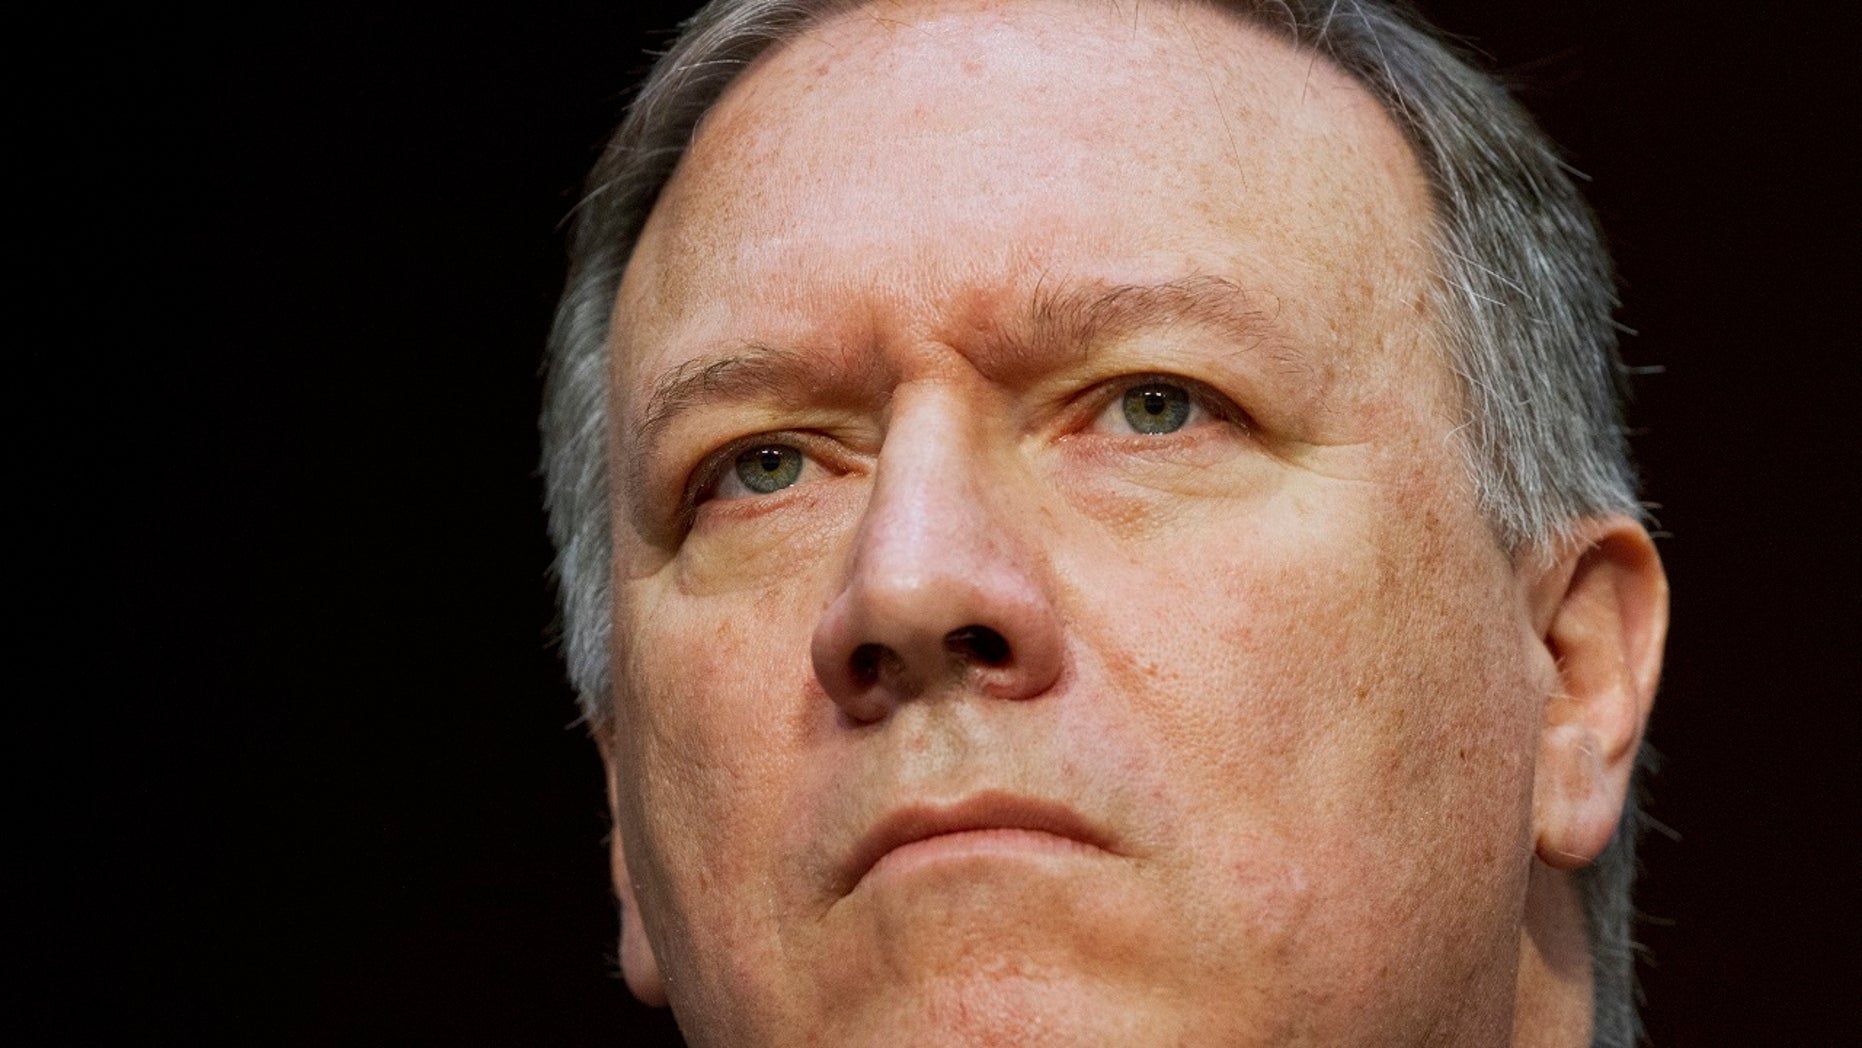 CIA Director Mike Pompeo, seen here in May 2017, said he expects Russia will try to meddle in the U.S. midterm elections